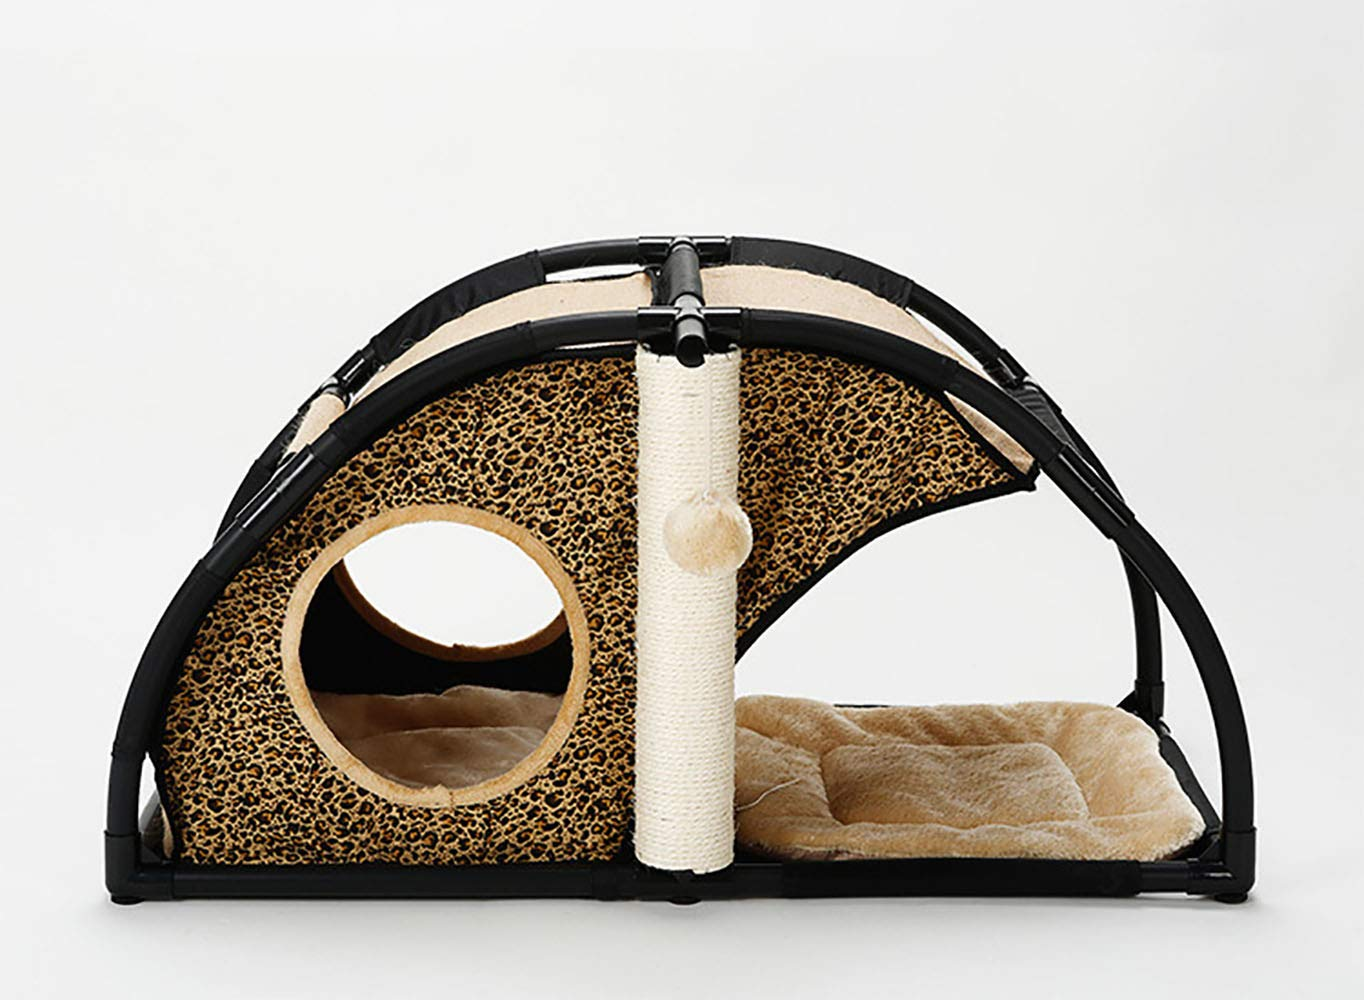 Leopard Print SuperJOJOLEE Cat Climbing Frame Sisal Rope Cat Nest MultiFunction Pet Supplies Combination Nest Pet Cat Toy Cat Stand